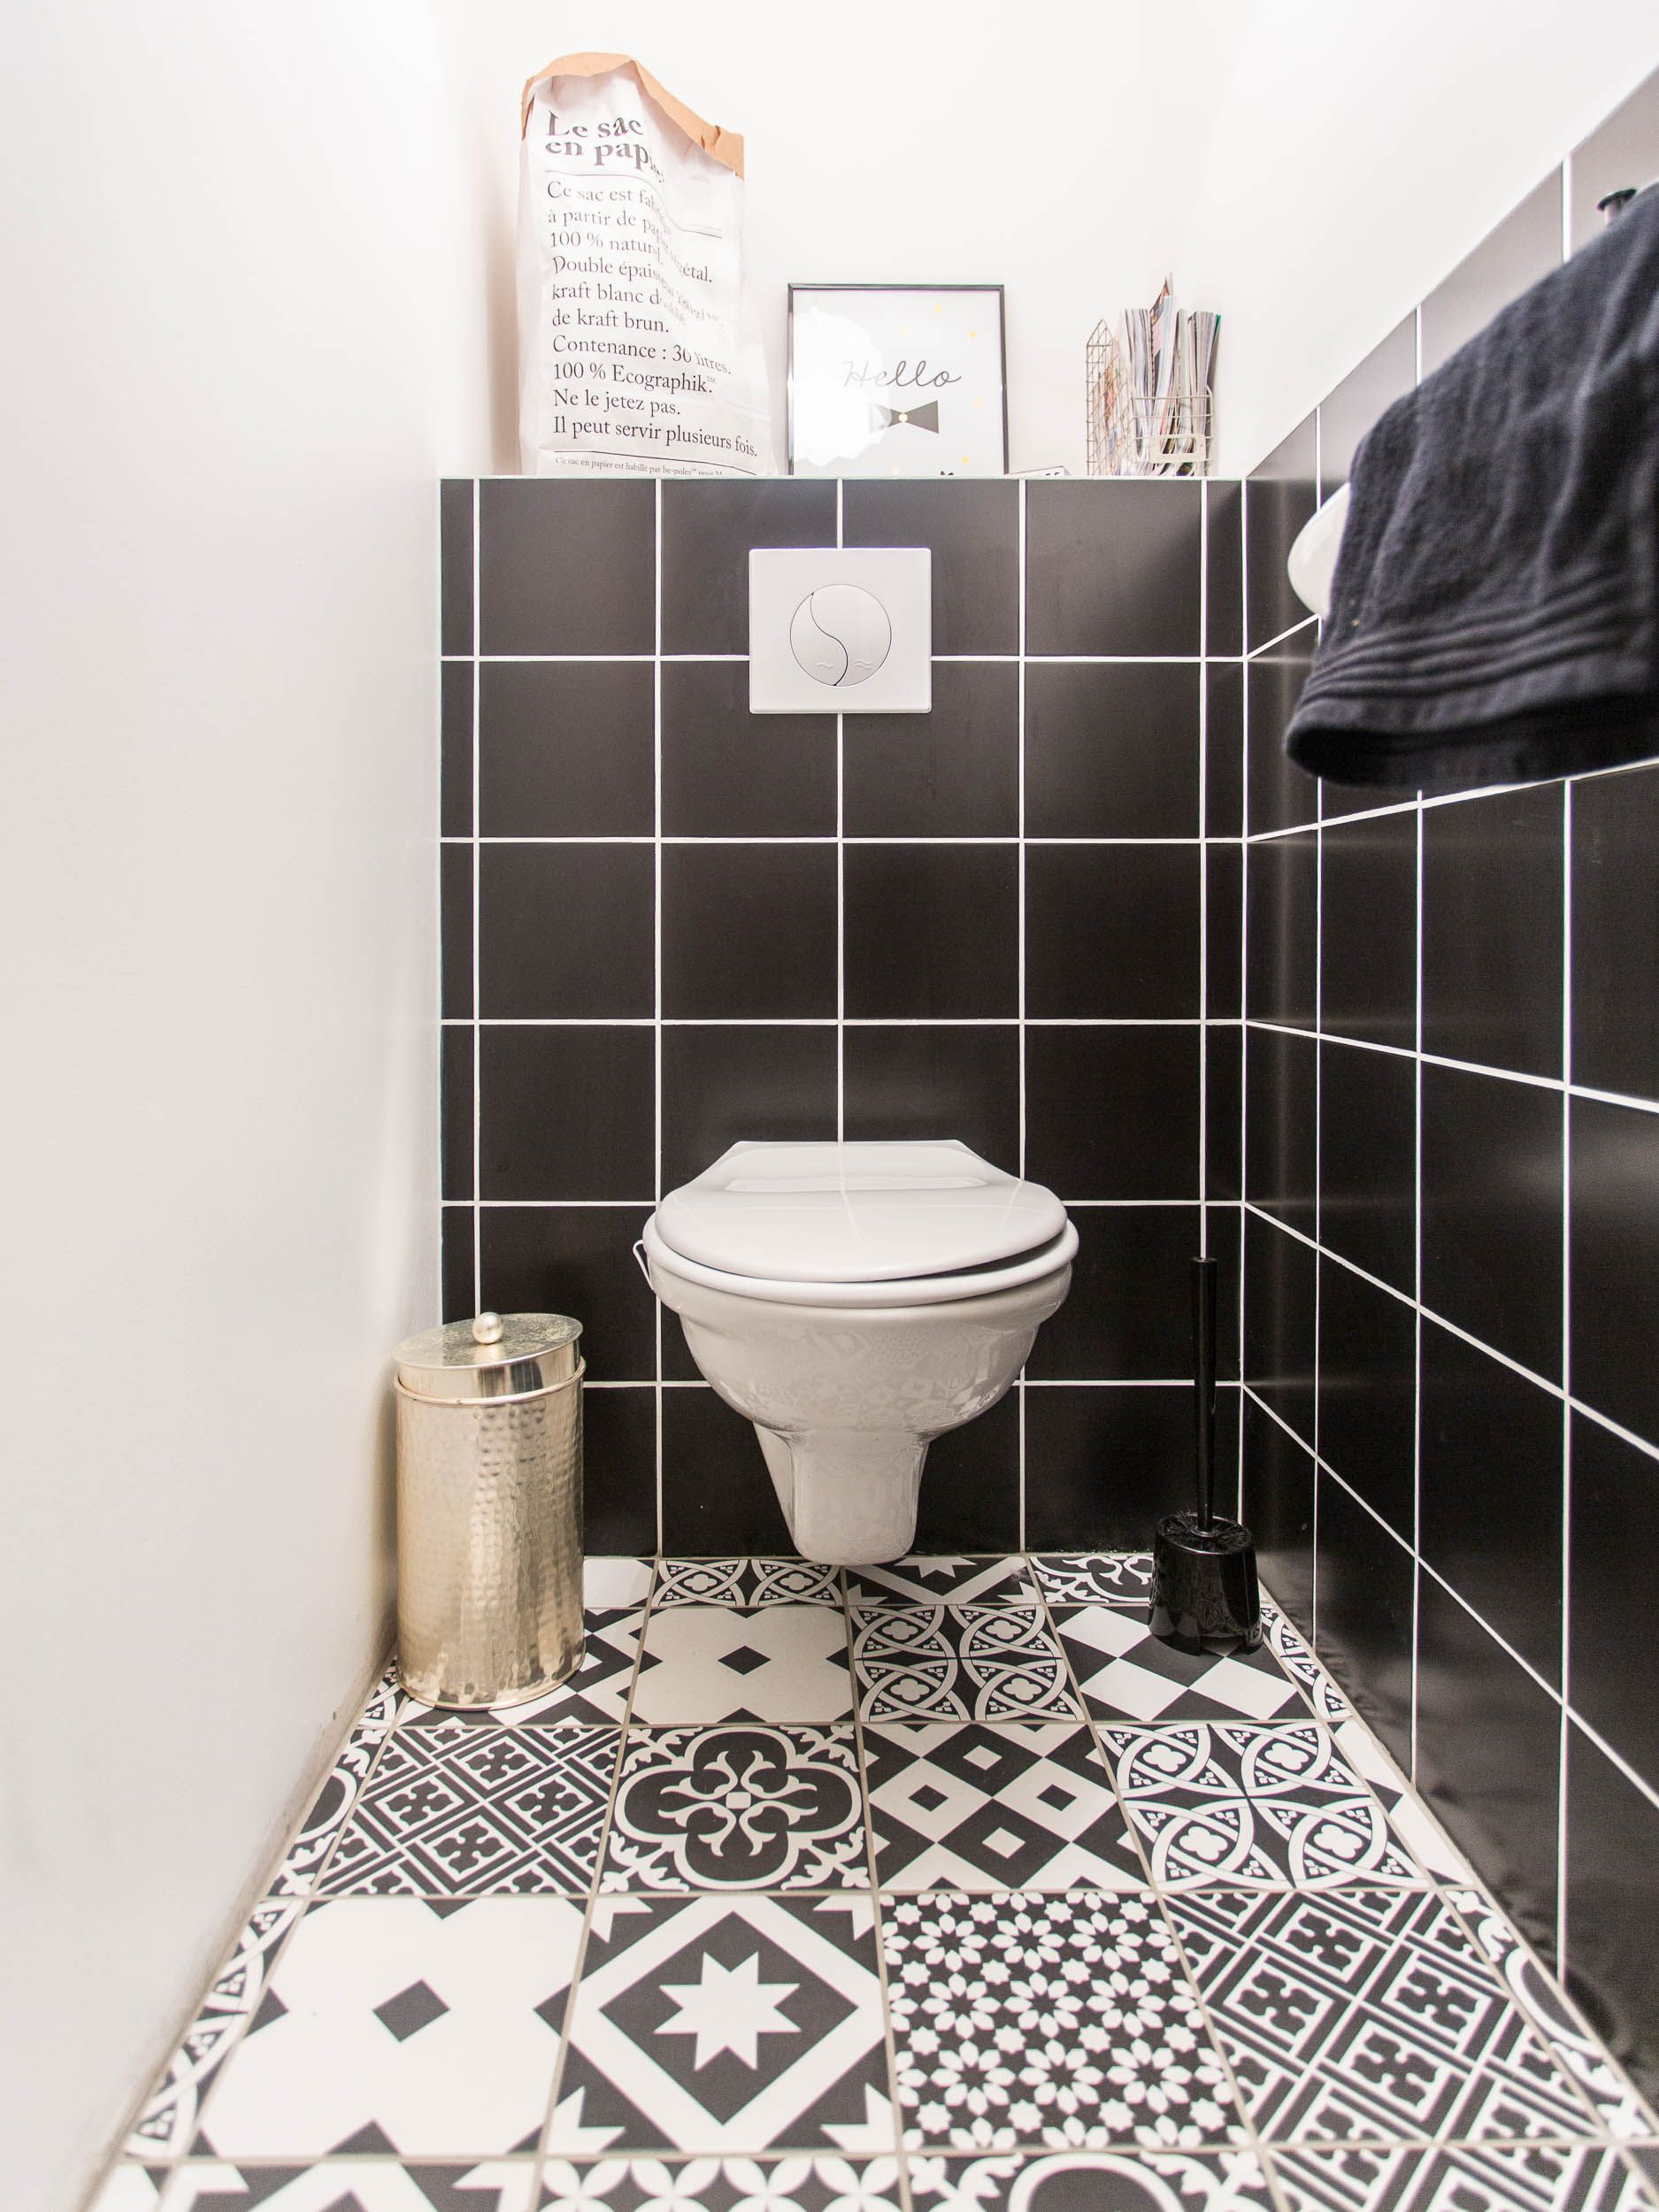 Jolie d coration de toilettes par marc antoine for Carrelage de wc